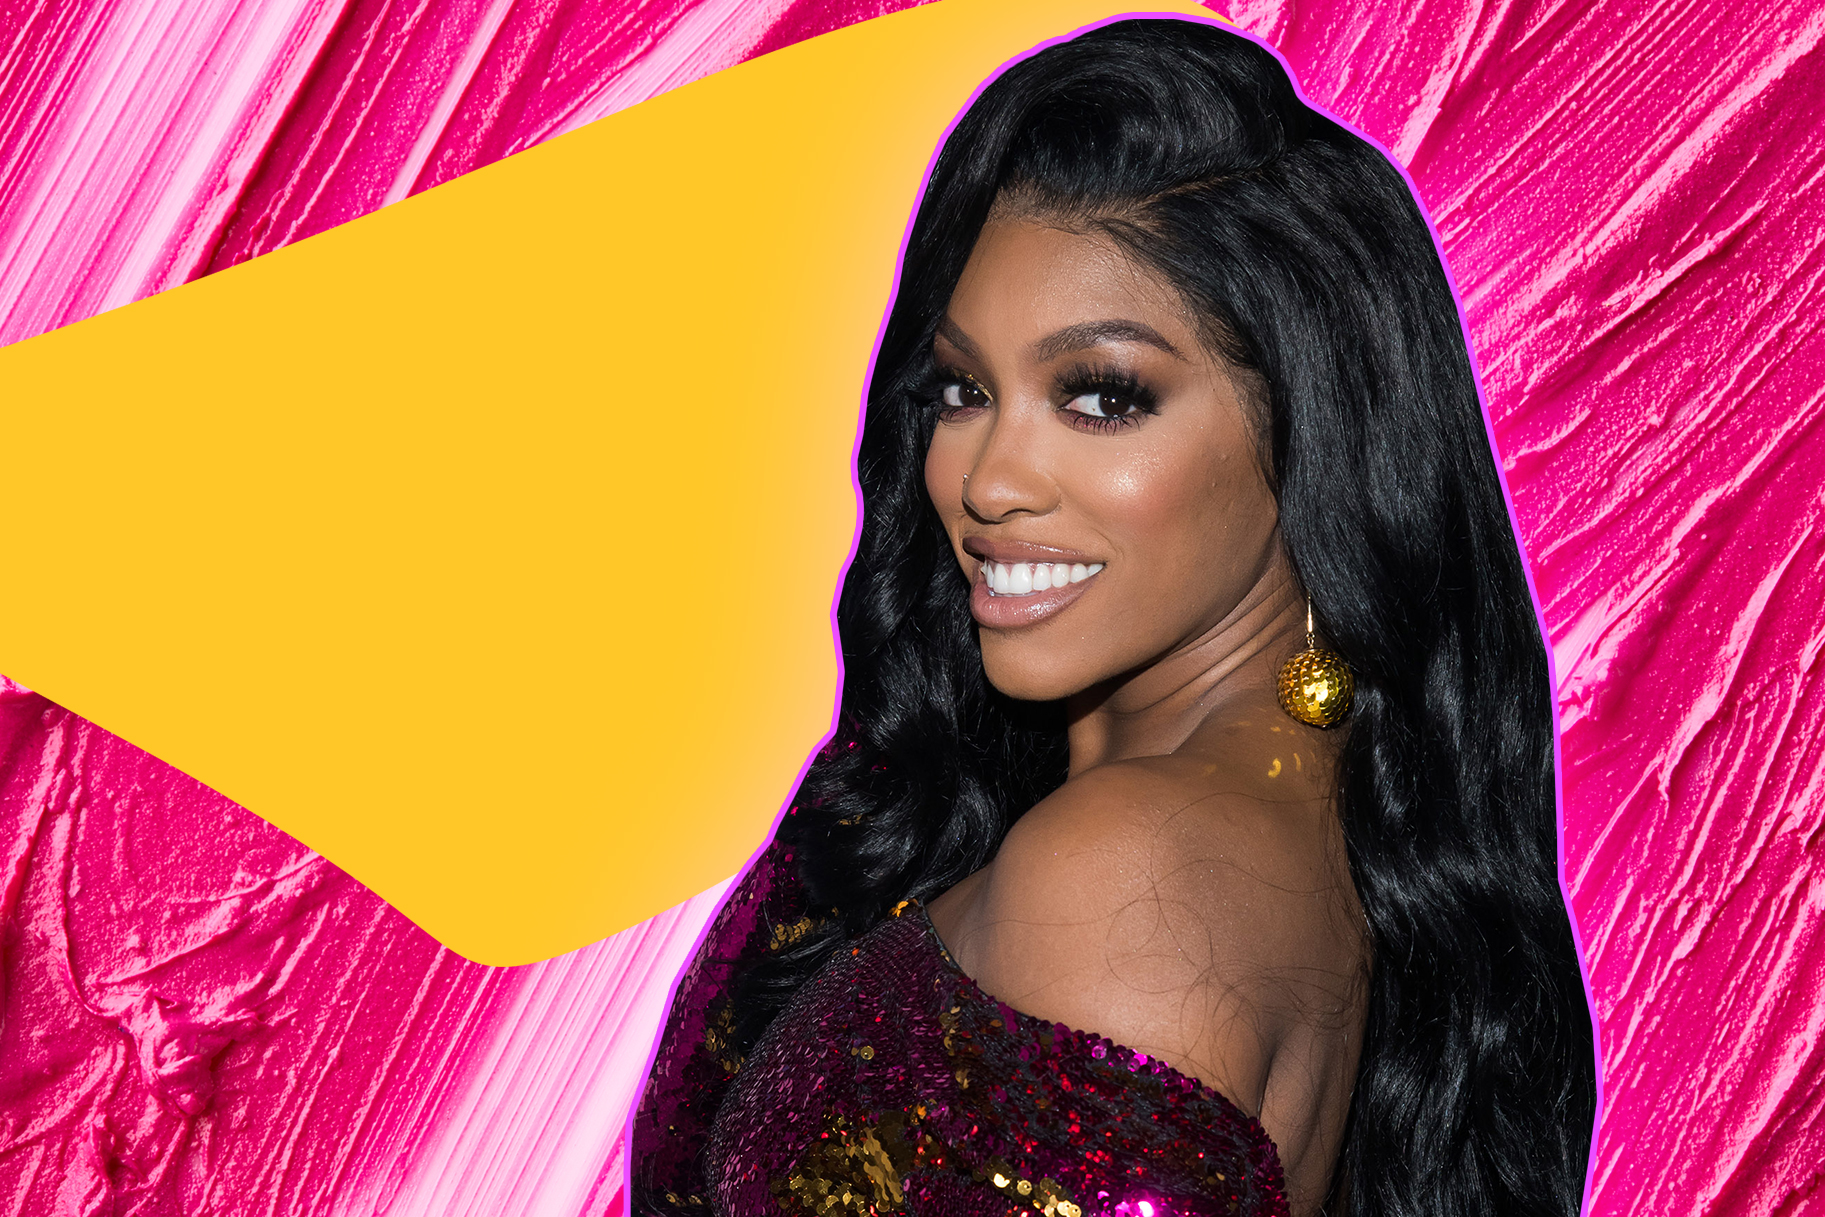 Porsha Williams Shows Fans What She's Working With In This Video And People Cannot Get Enough Of Her: 'OMG, You Look Bomb!'